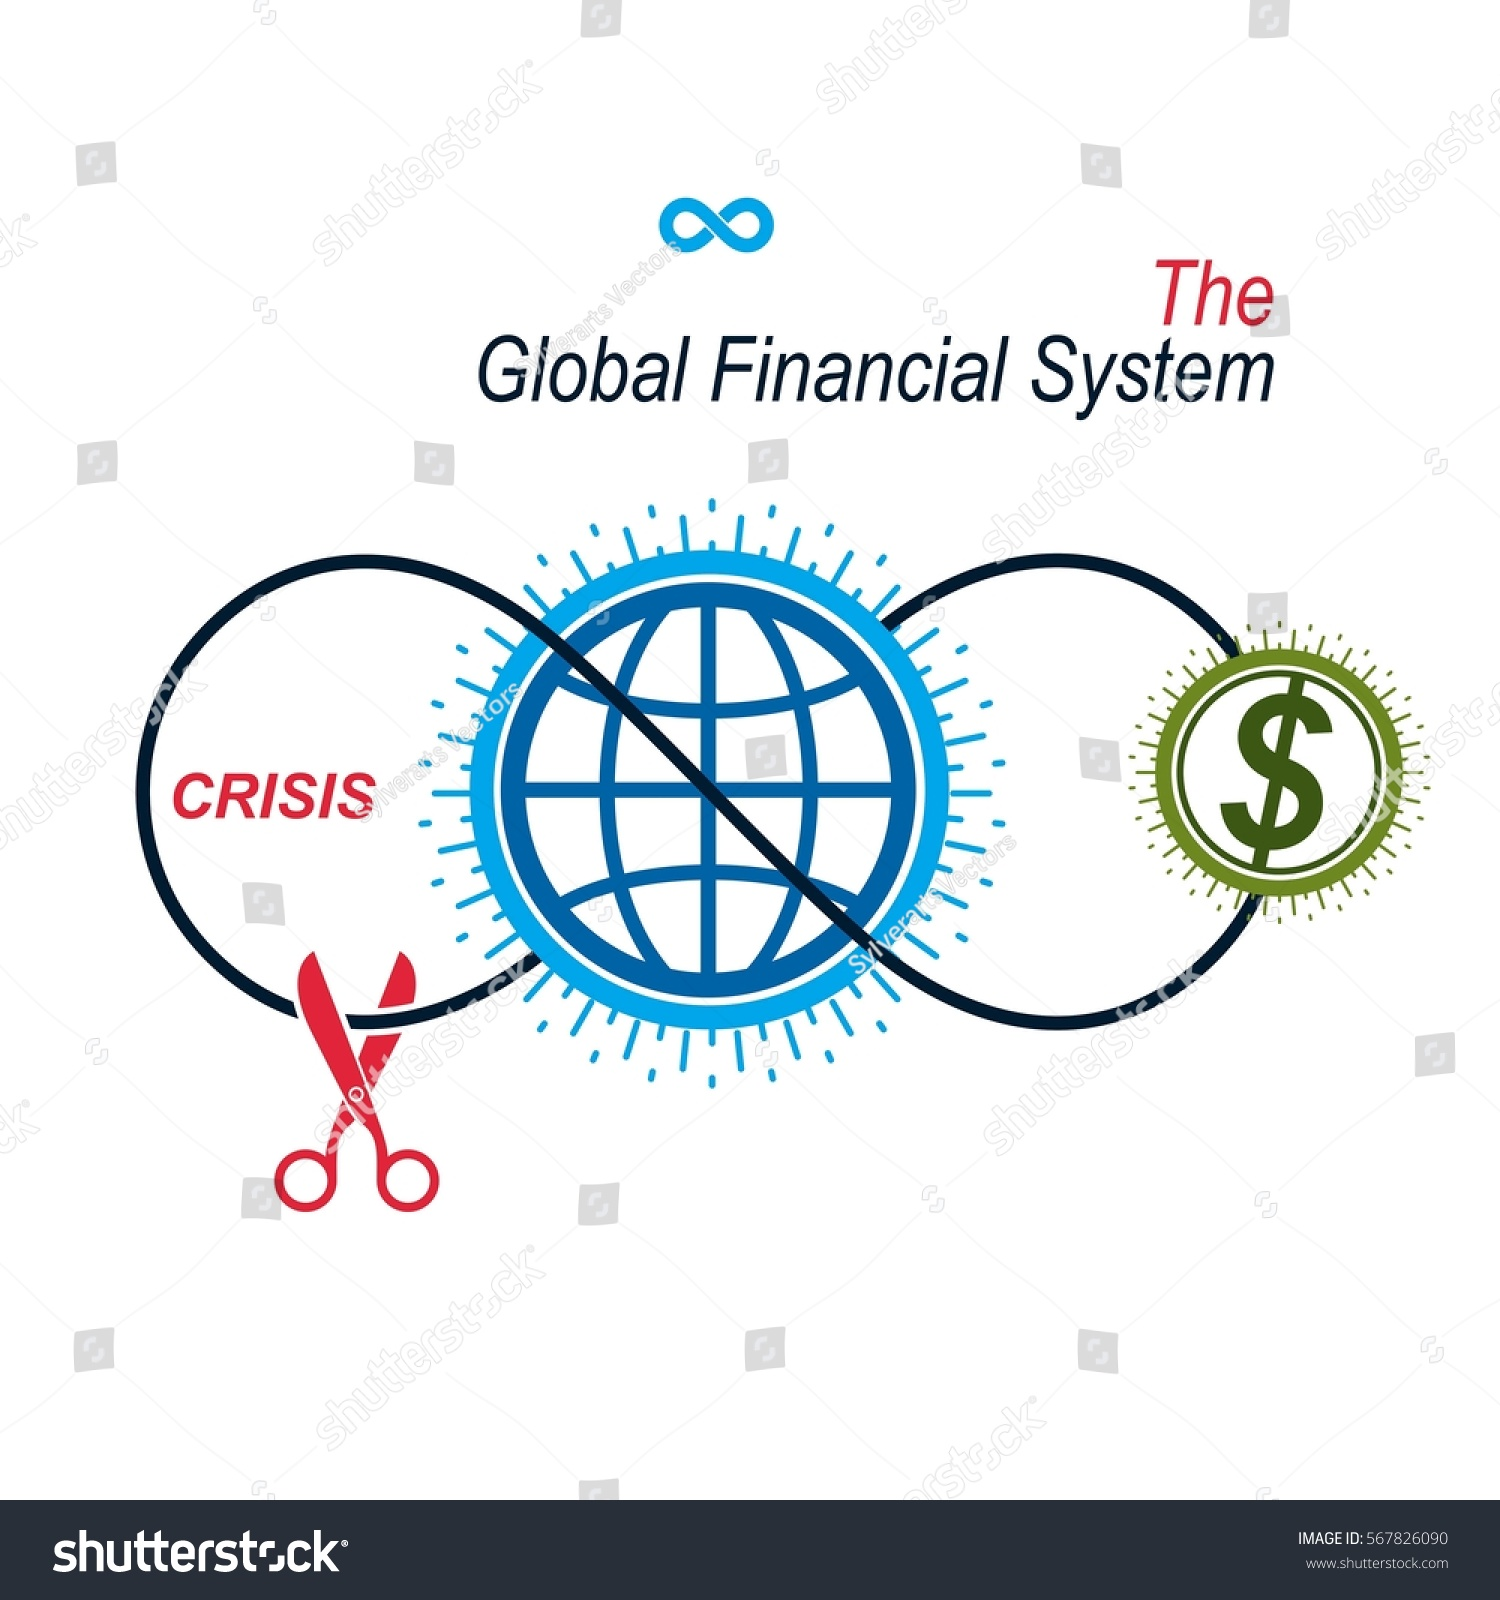 Crisis global financial system conceptual logo stock vector the crisis in global financial system conceptual logo unique vector symbol banking system biocorpaavc Gallery